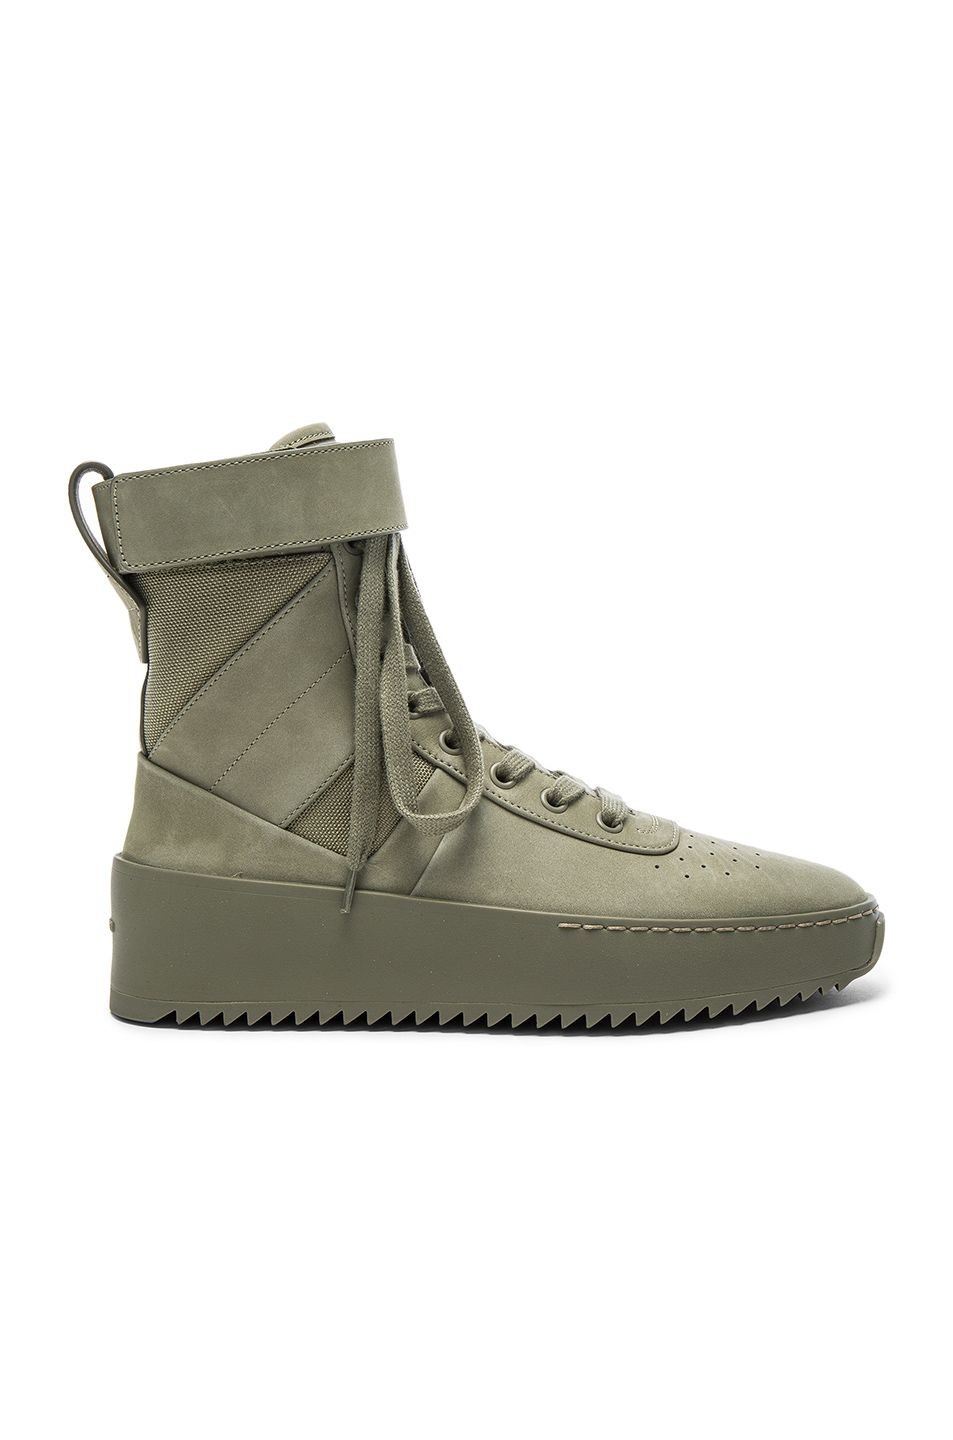 d7c4690f7bc8 FEAR OF GOD Nubuck Leather Military Sneakers.  fearofgod  shoes ...